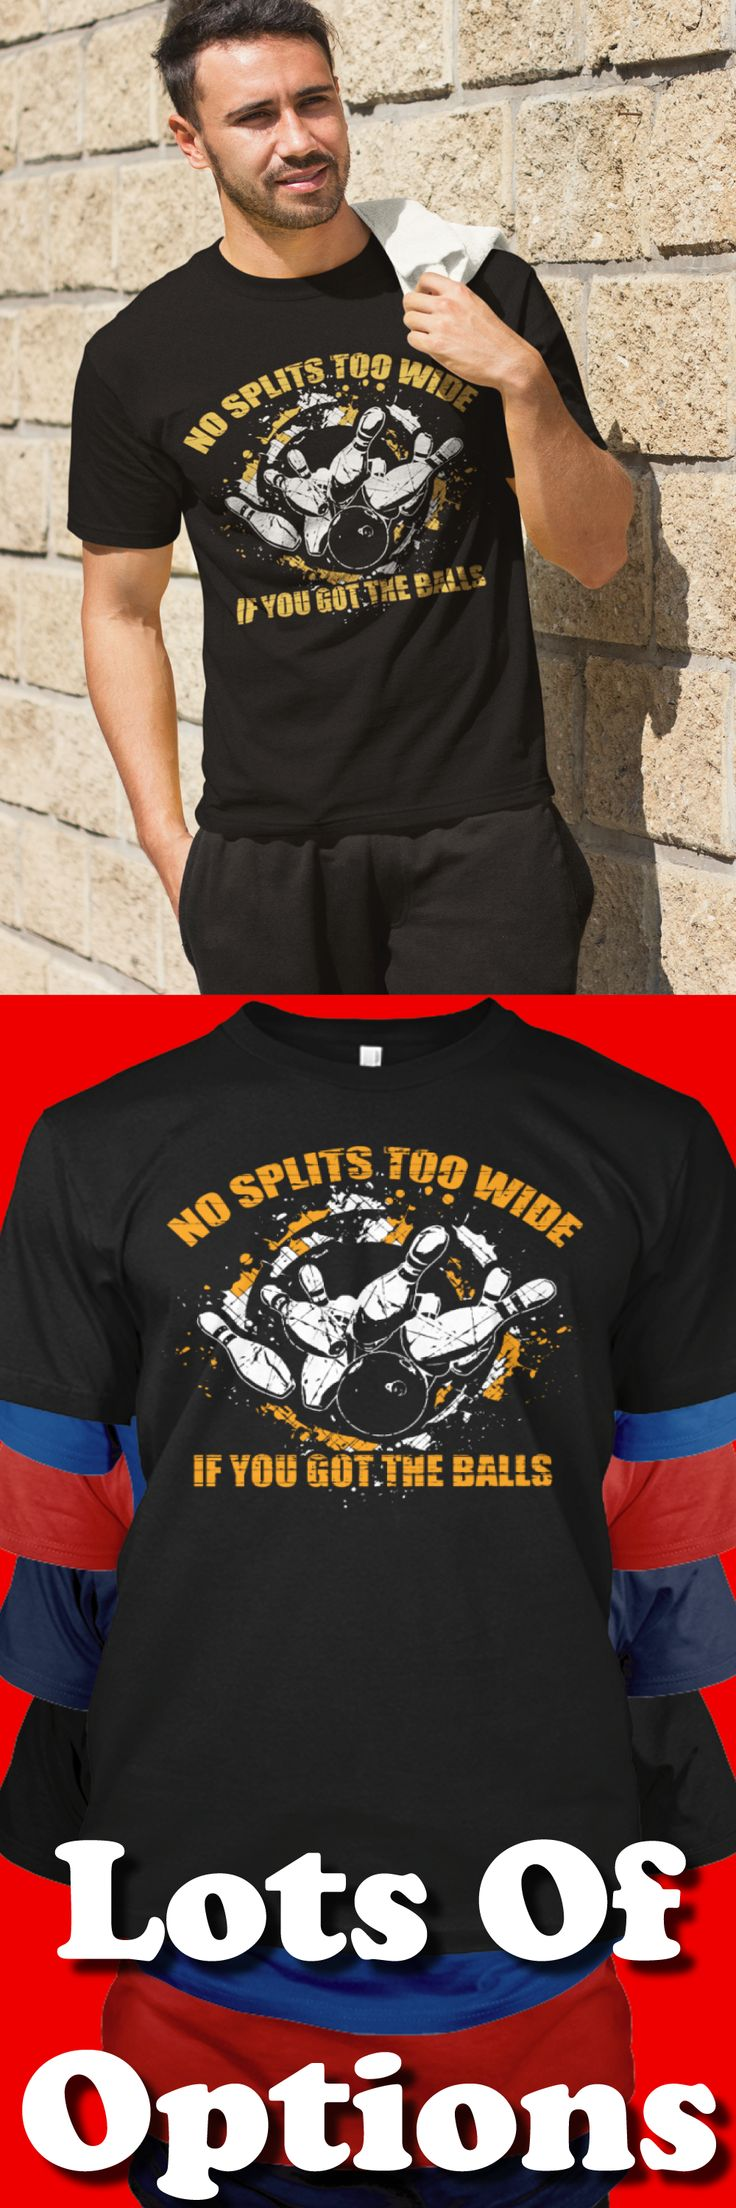 Bowling Shirts: Do You Love Bowling? Great Bowling Gift! Lots Of Sizes & Colors. Love Bowling? Love Funny Bowling Shirts? Wear Bowling Shirts? Strict Limit Of 5 Shirts! Treat Yourself & Click Now! https://teespring.com/DN85-959